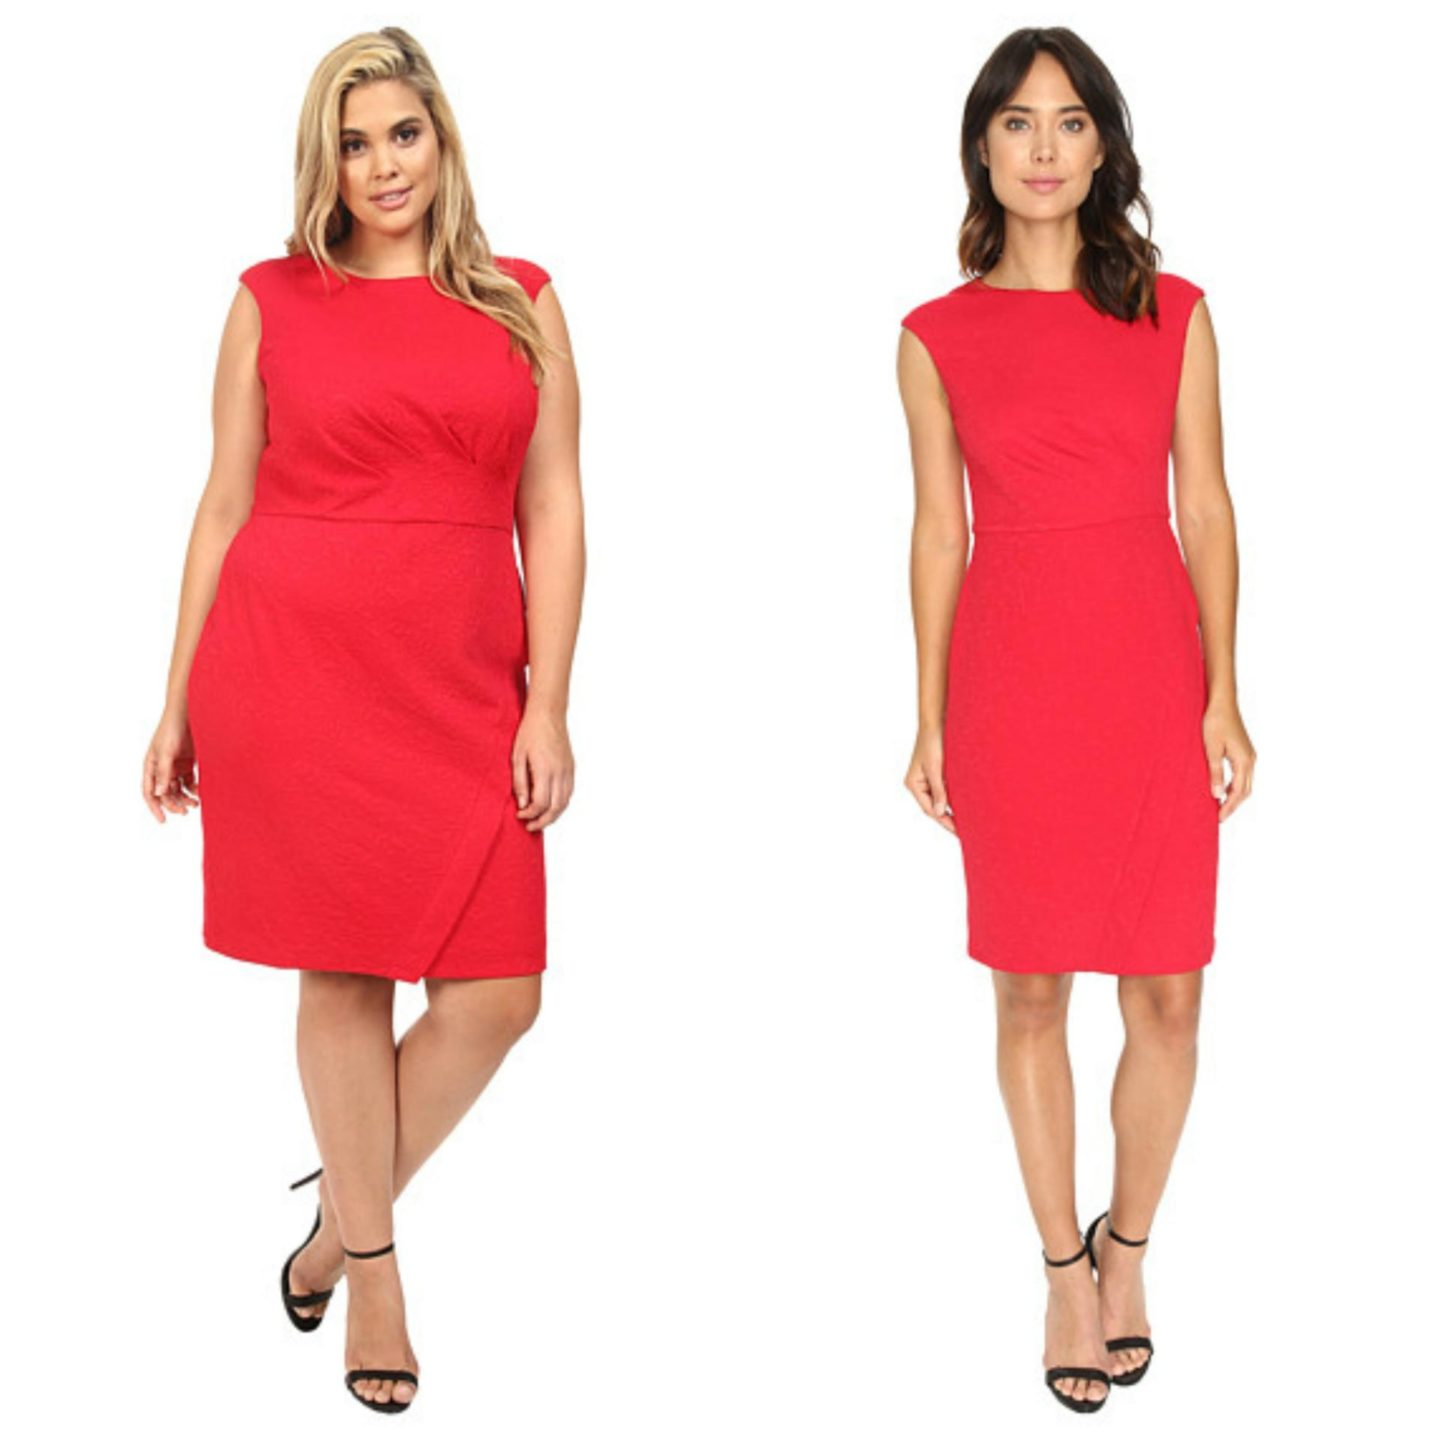 Dress Styles You Must-Have